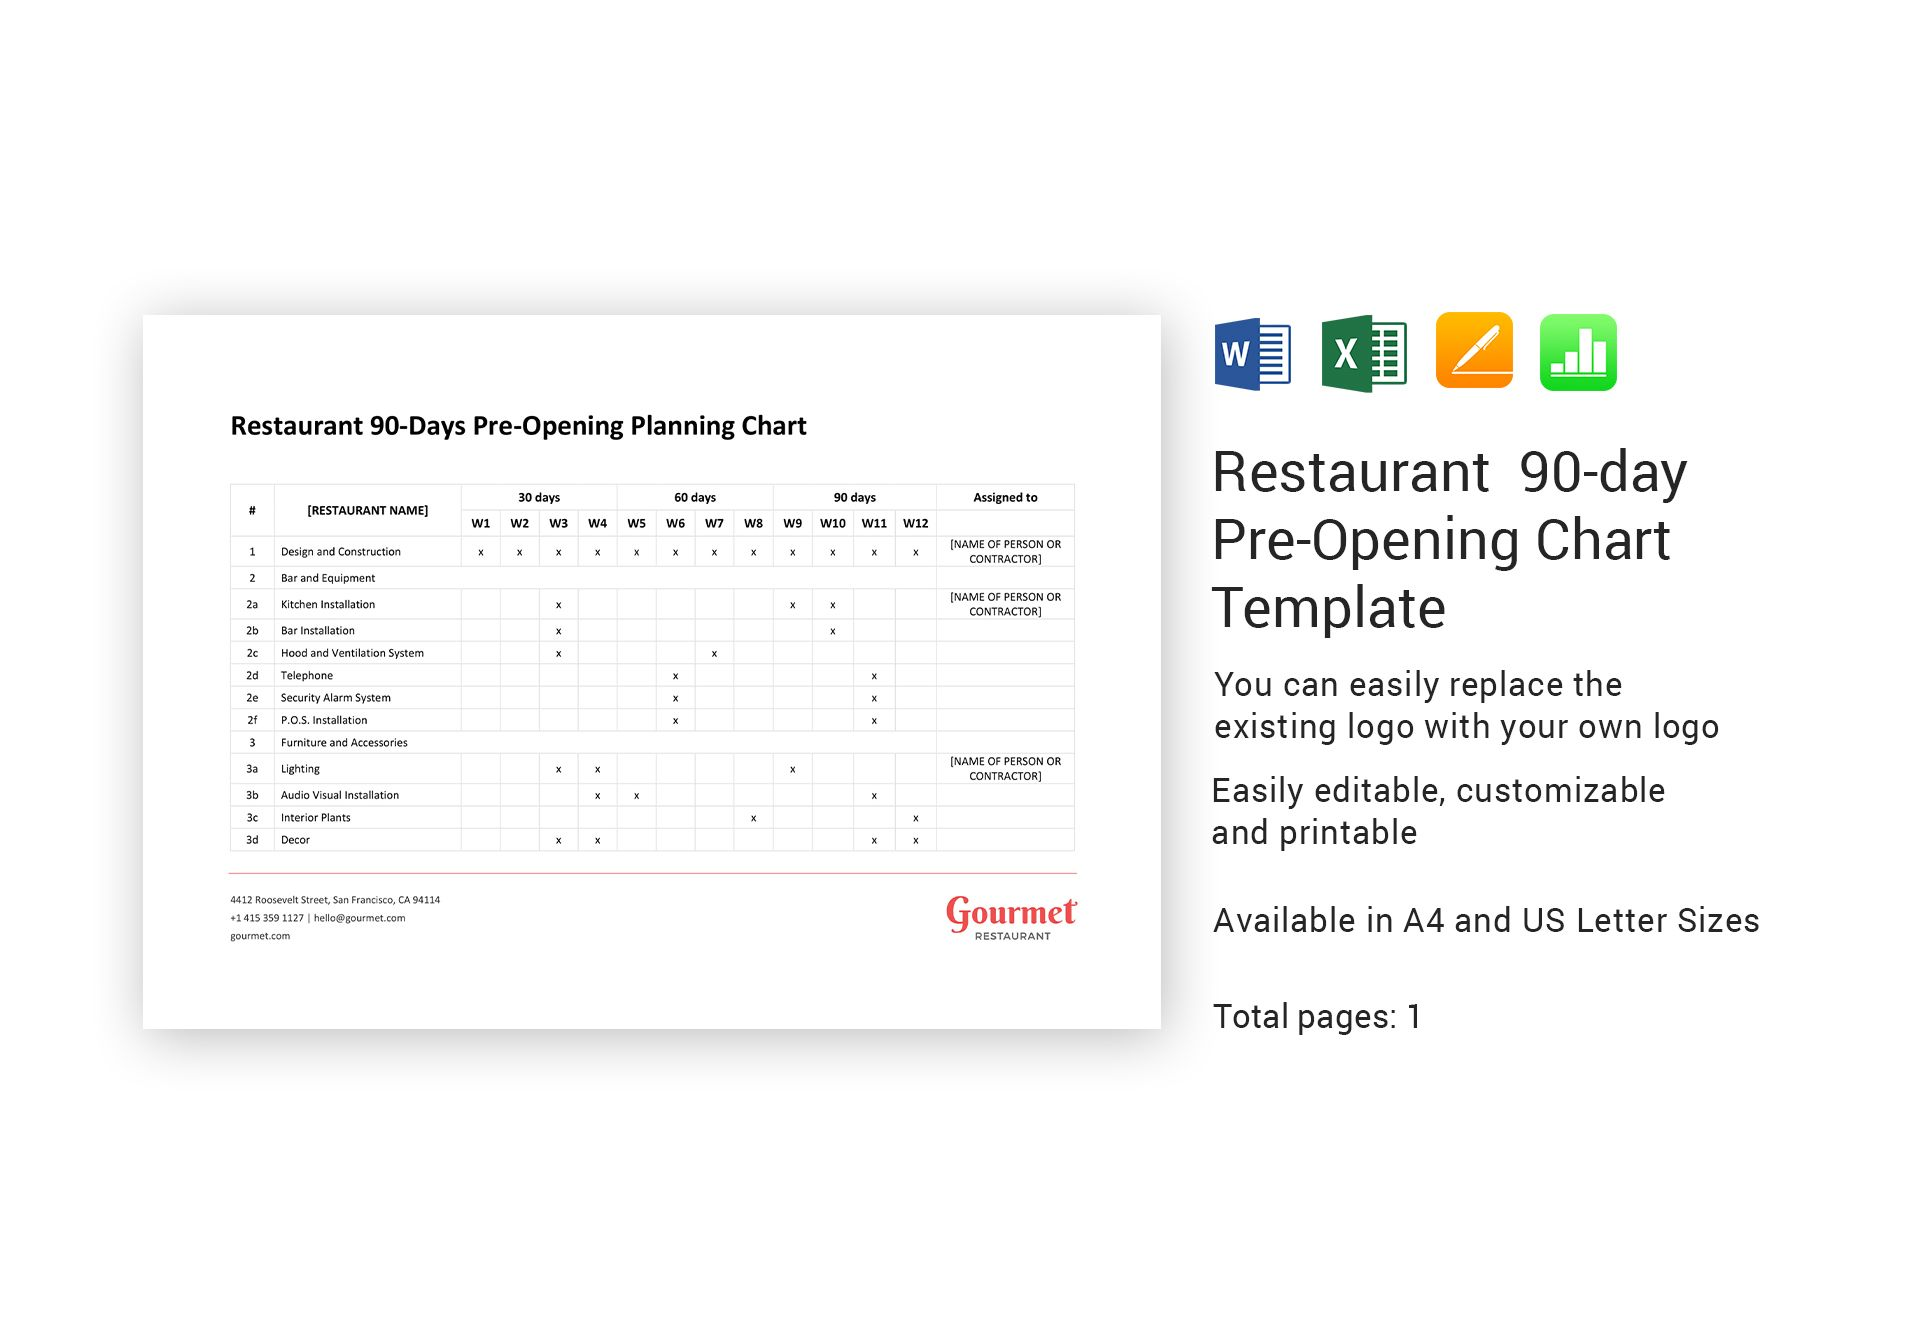 Restaurant 90-day Pre-Opening Chart